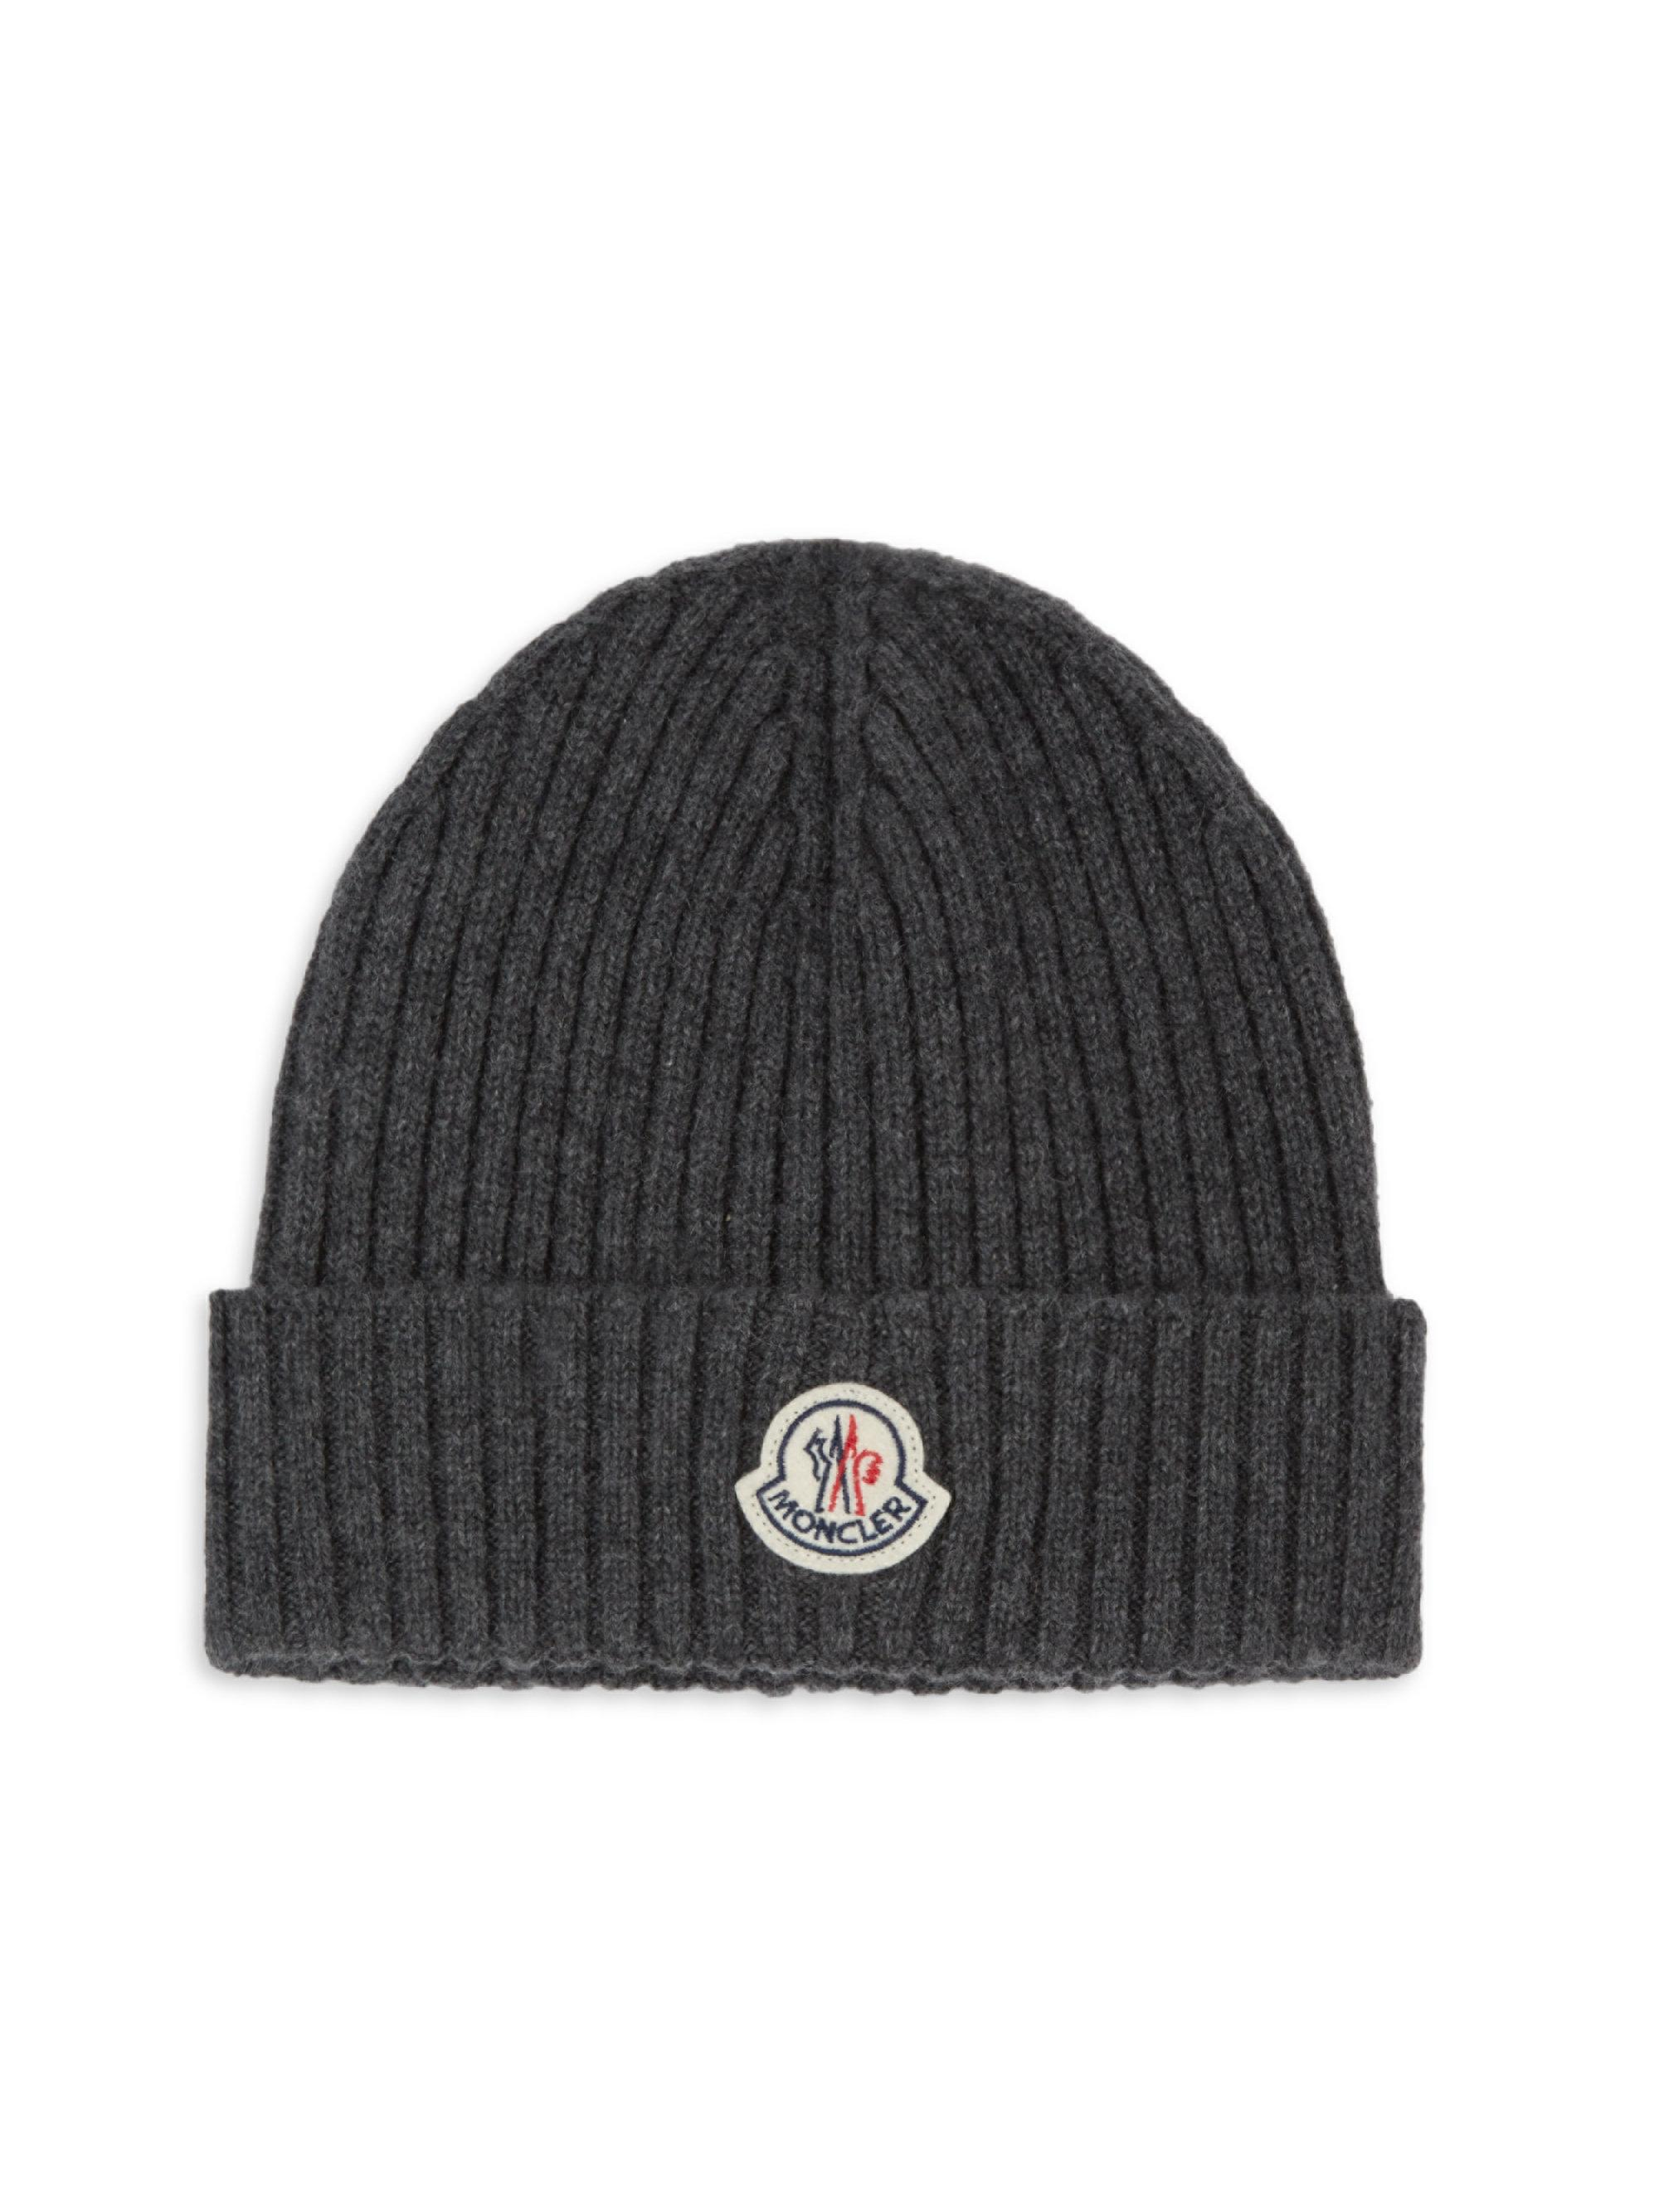 Moncler Berretto Cashmere Beanie in Gray for Men - Lyst 54135bdcebd2